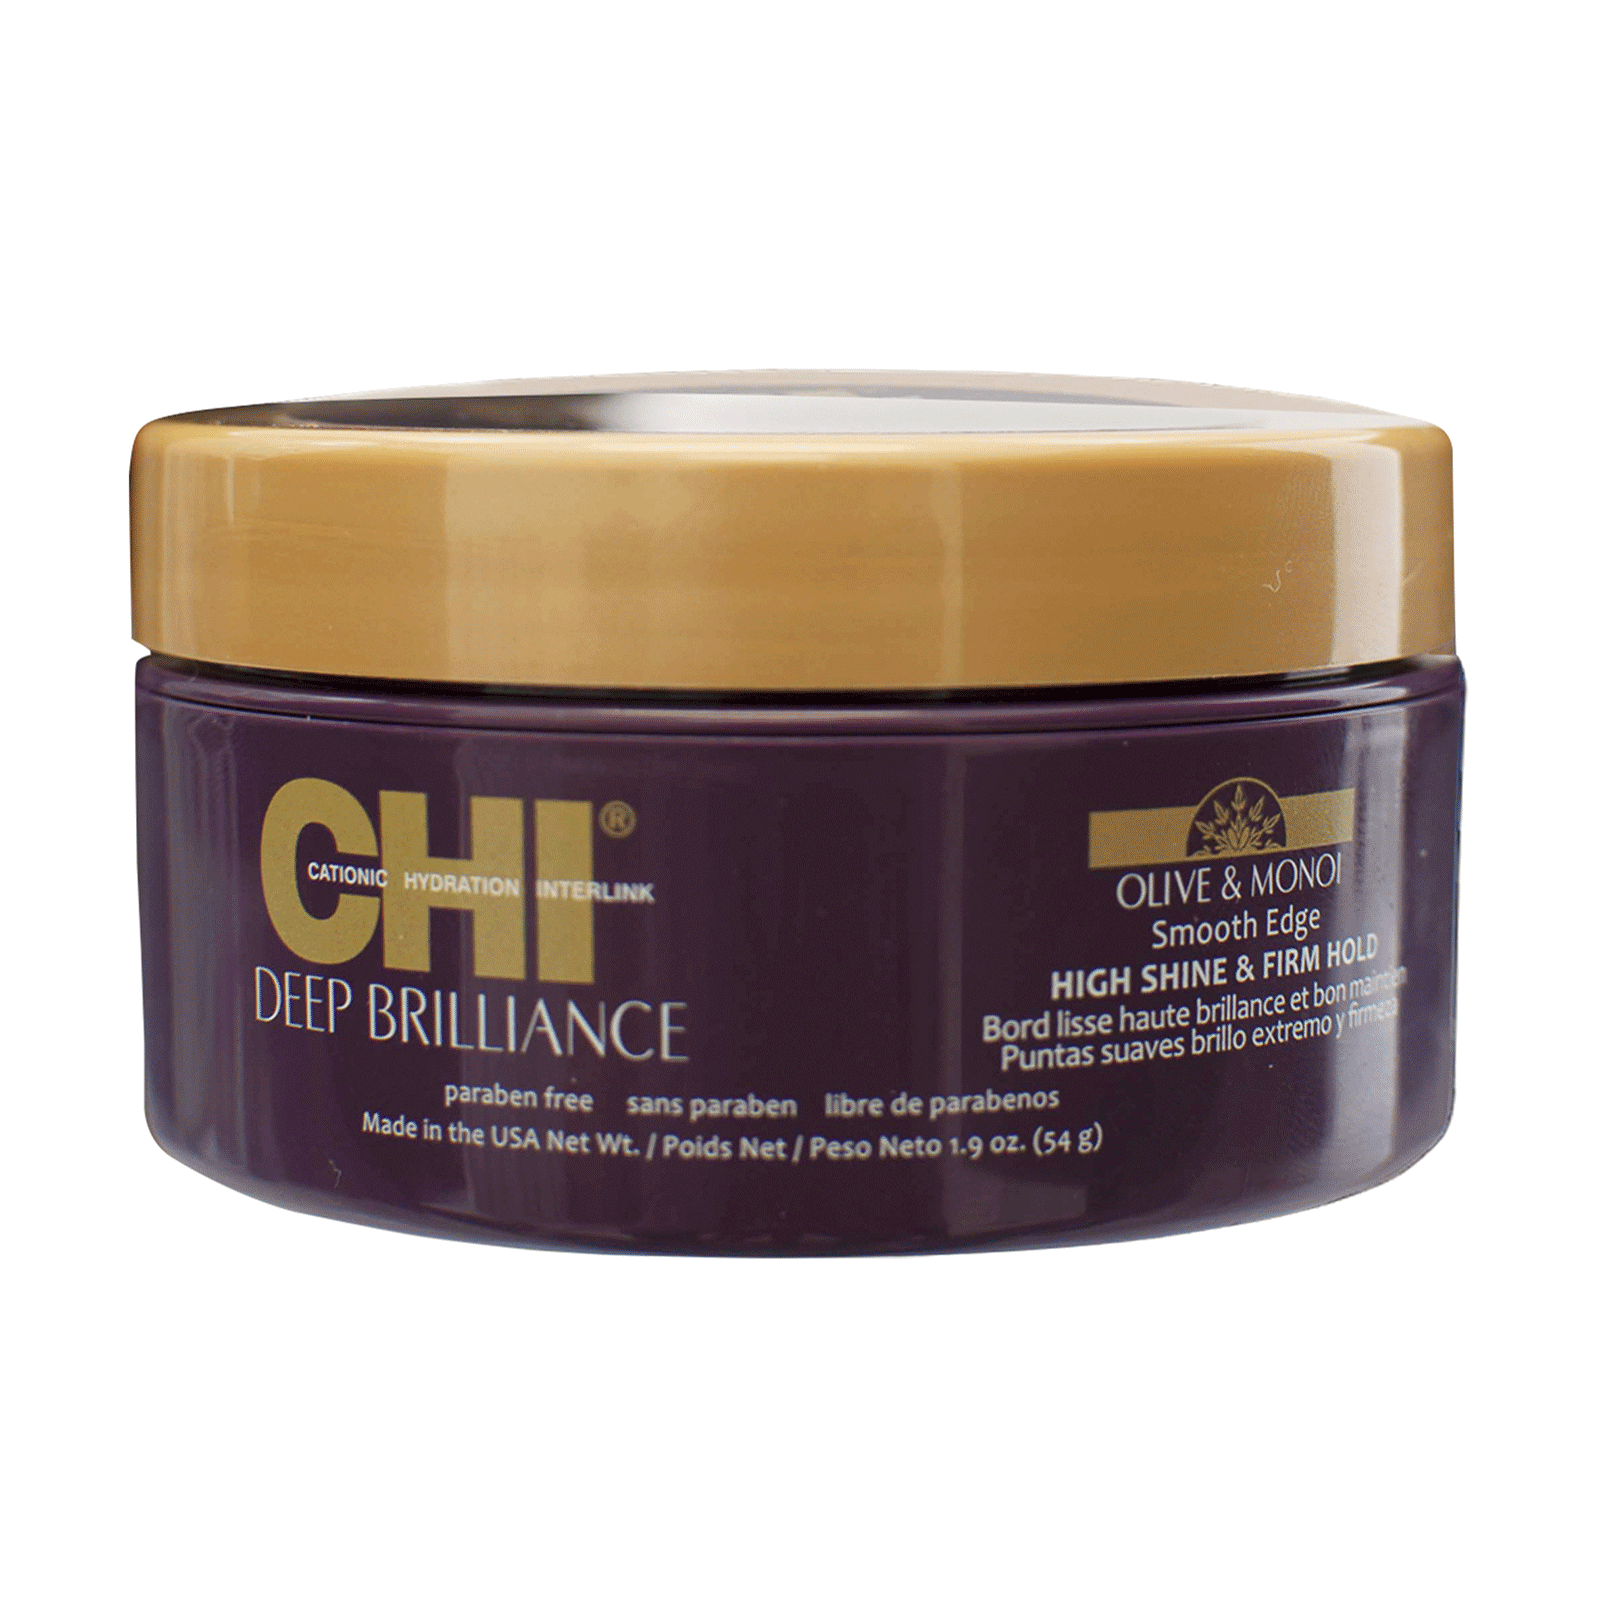 CHI Deep Brilliance - Smooth Edge High Shine & Firm Hold